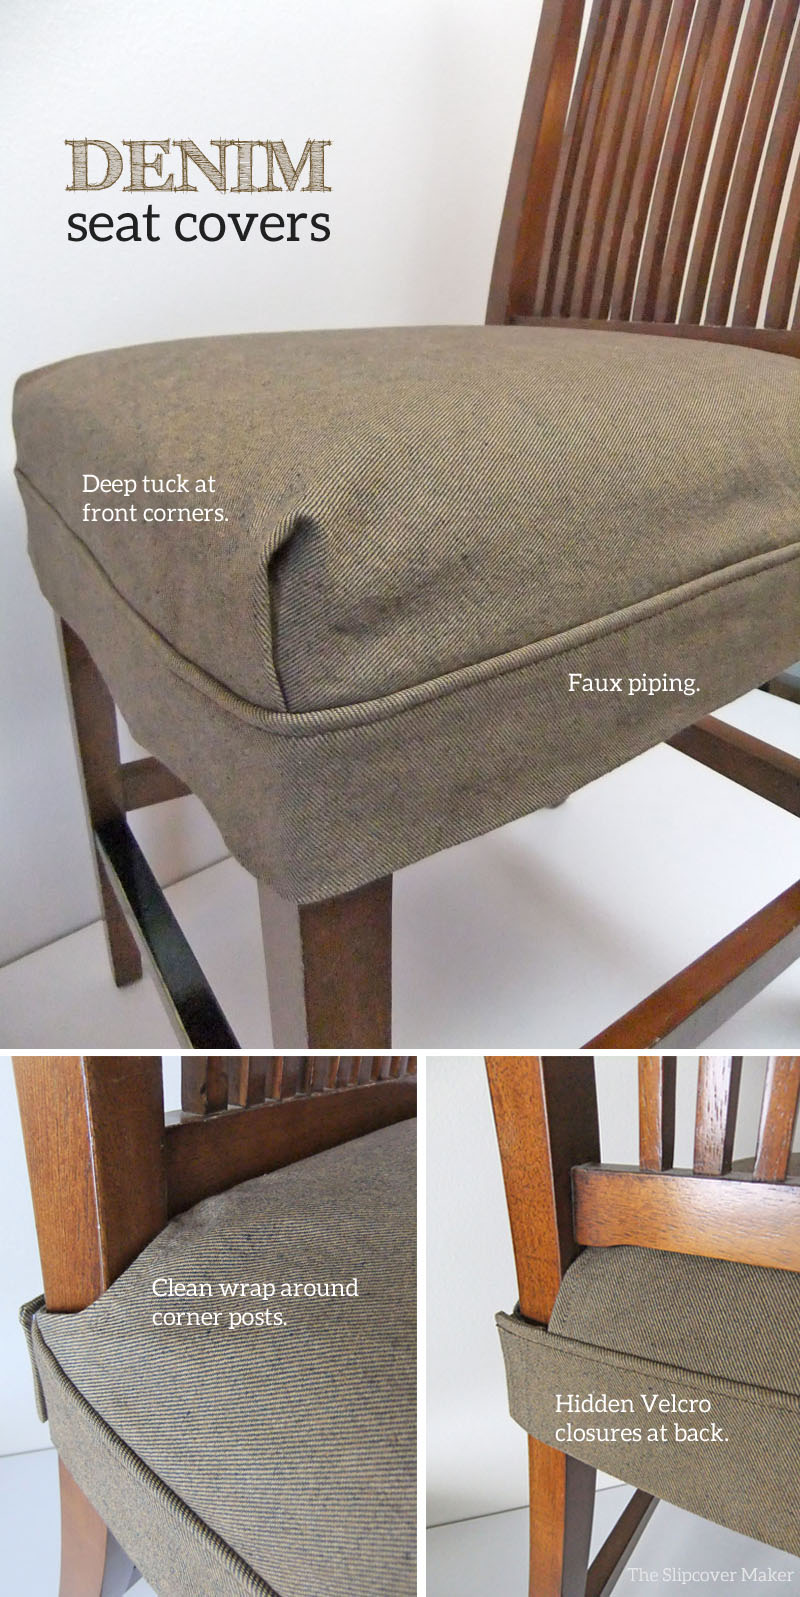 Pattern For Dining Room Chair Seat Covers tailored denim seat covers | the slipcover maker